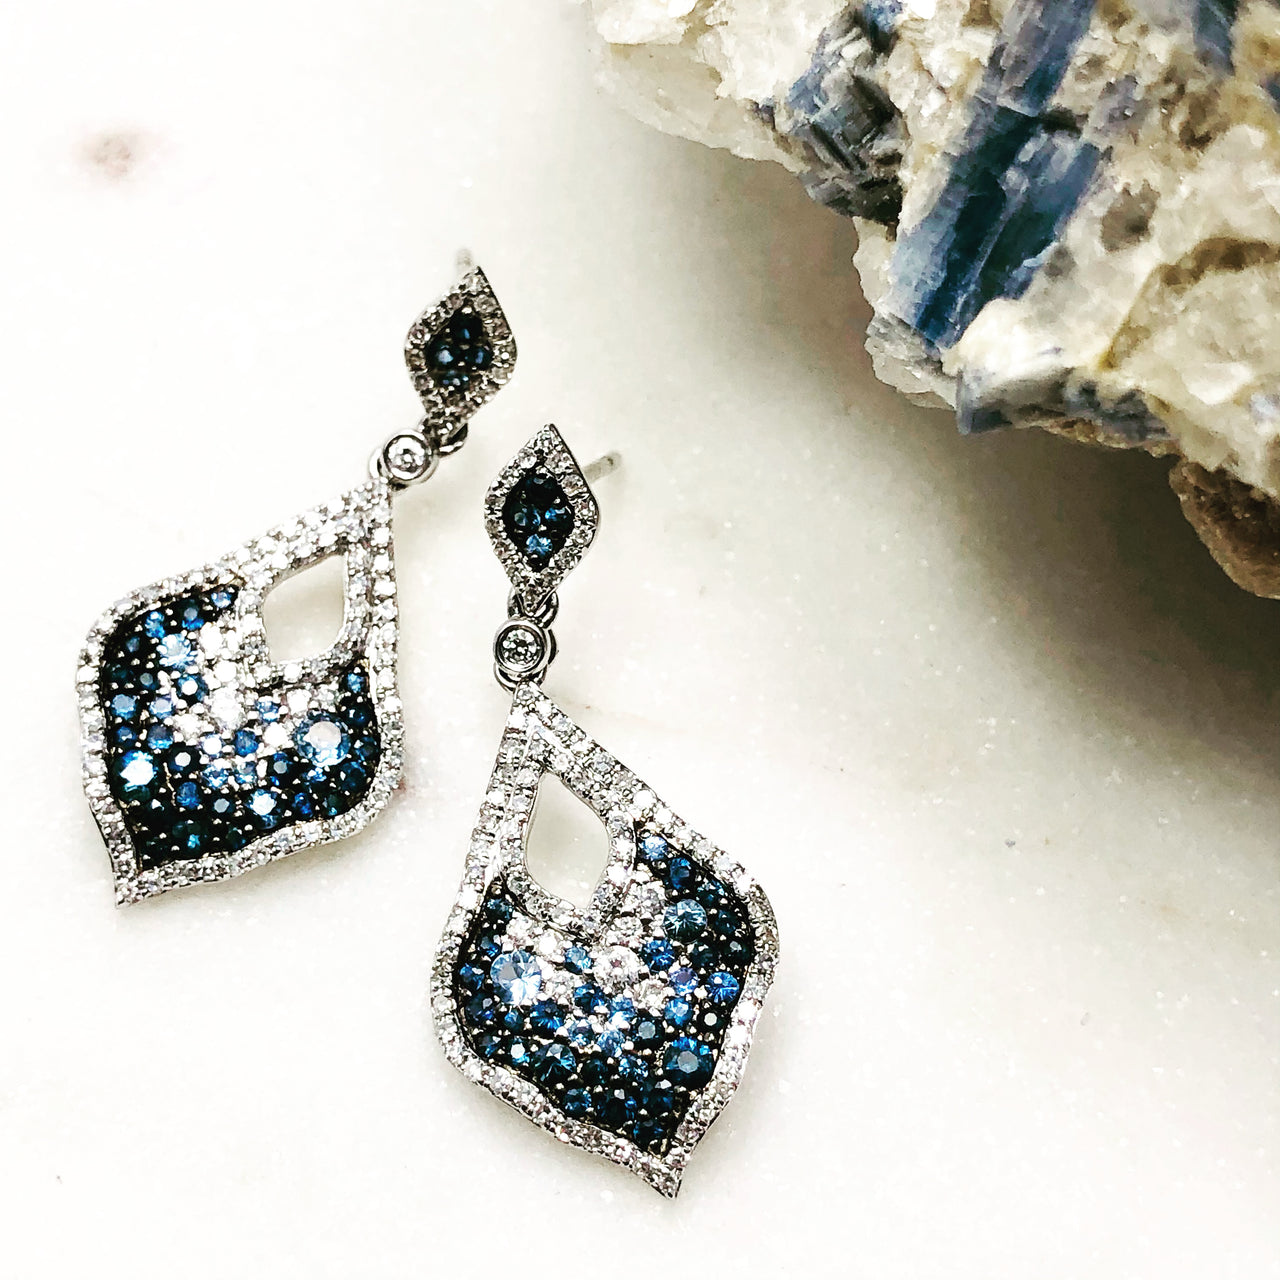 14K White Gold Sapphire and Diamond Earrings.